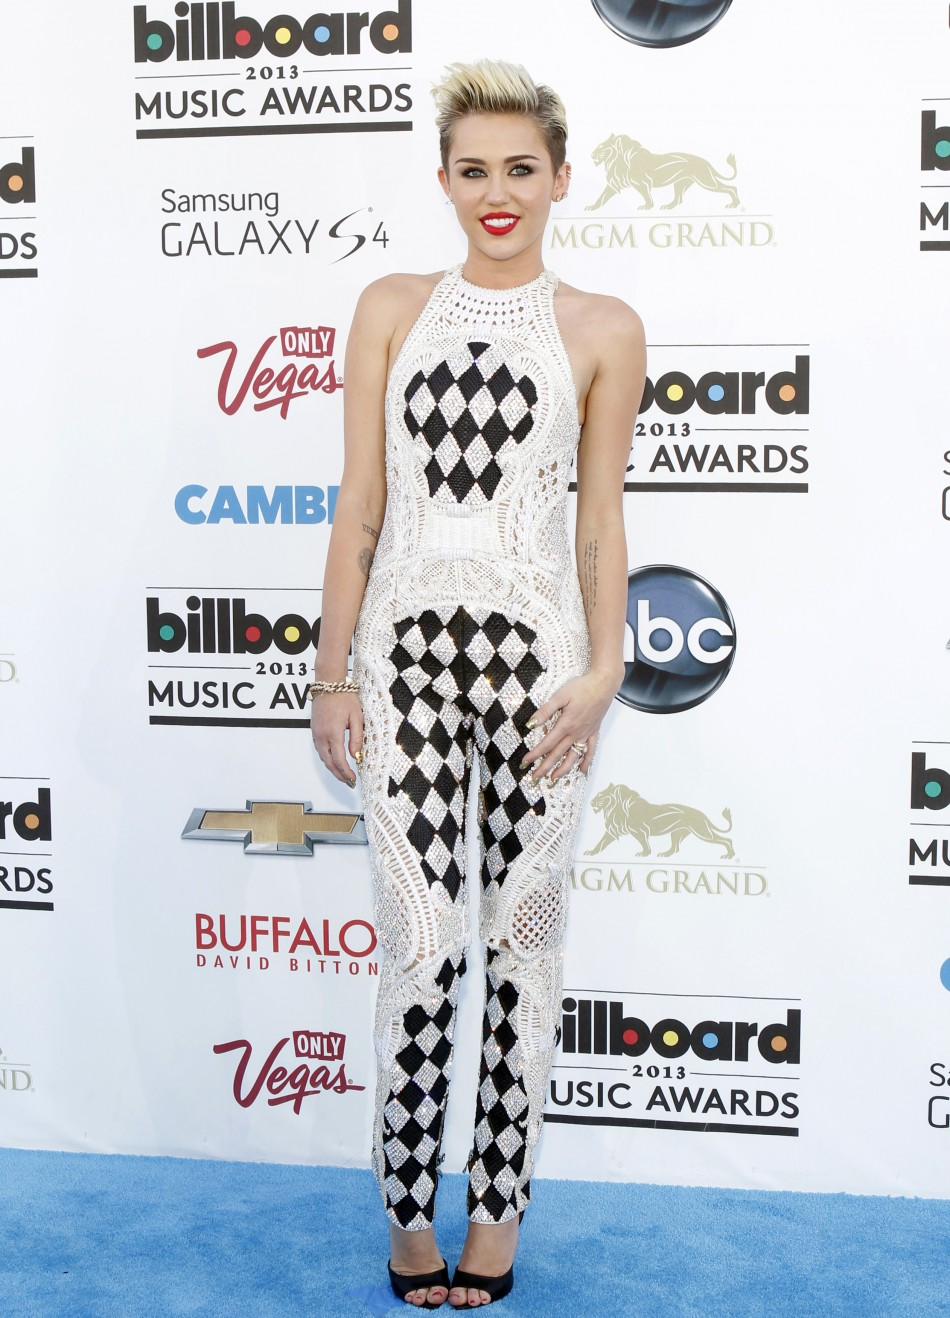 Singer Miley Ray Cyrus arrives at the Billboard Music Awards in Las Vegas, Nevada May 19, 2013.